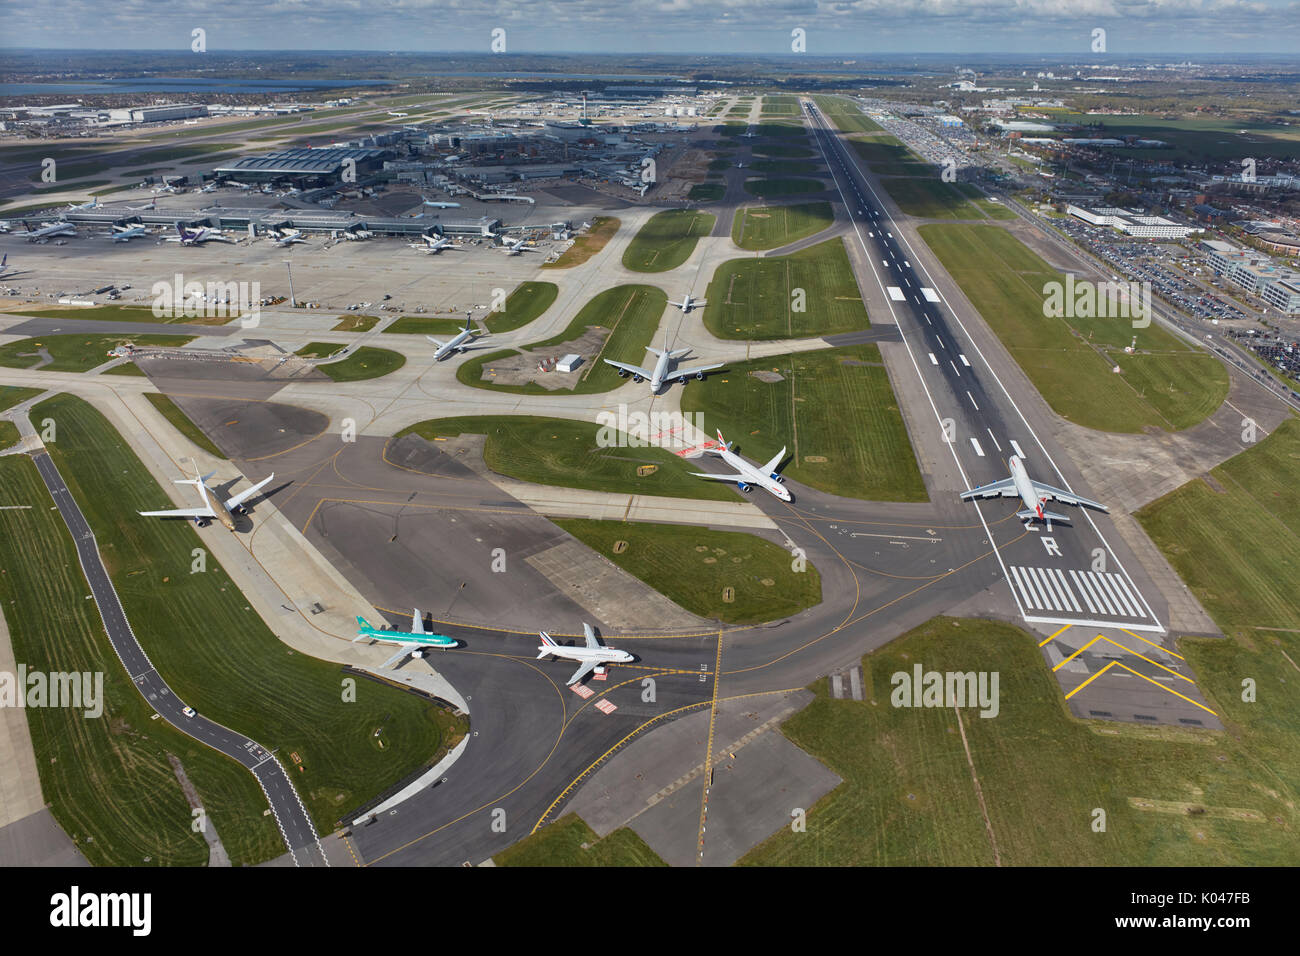 An aerial view of Heathrow Airport, the UK's busiest - Stock Image